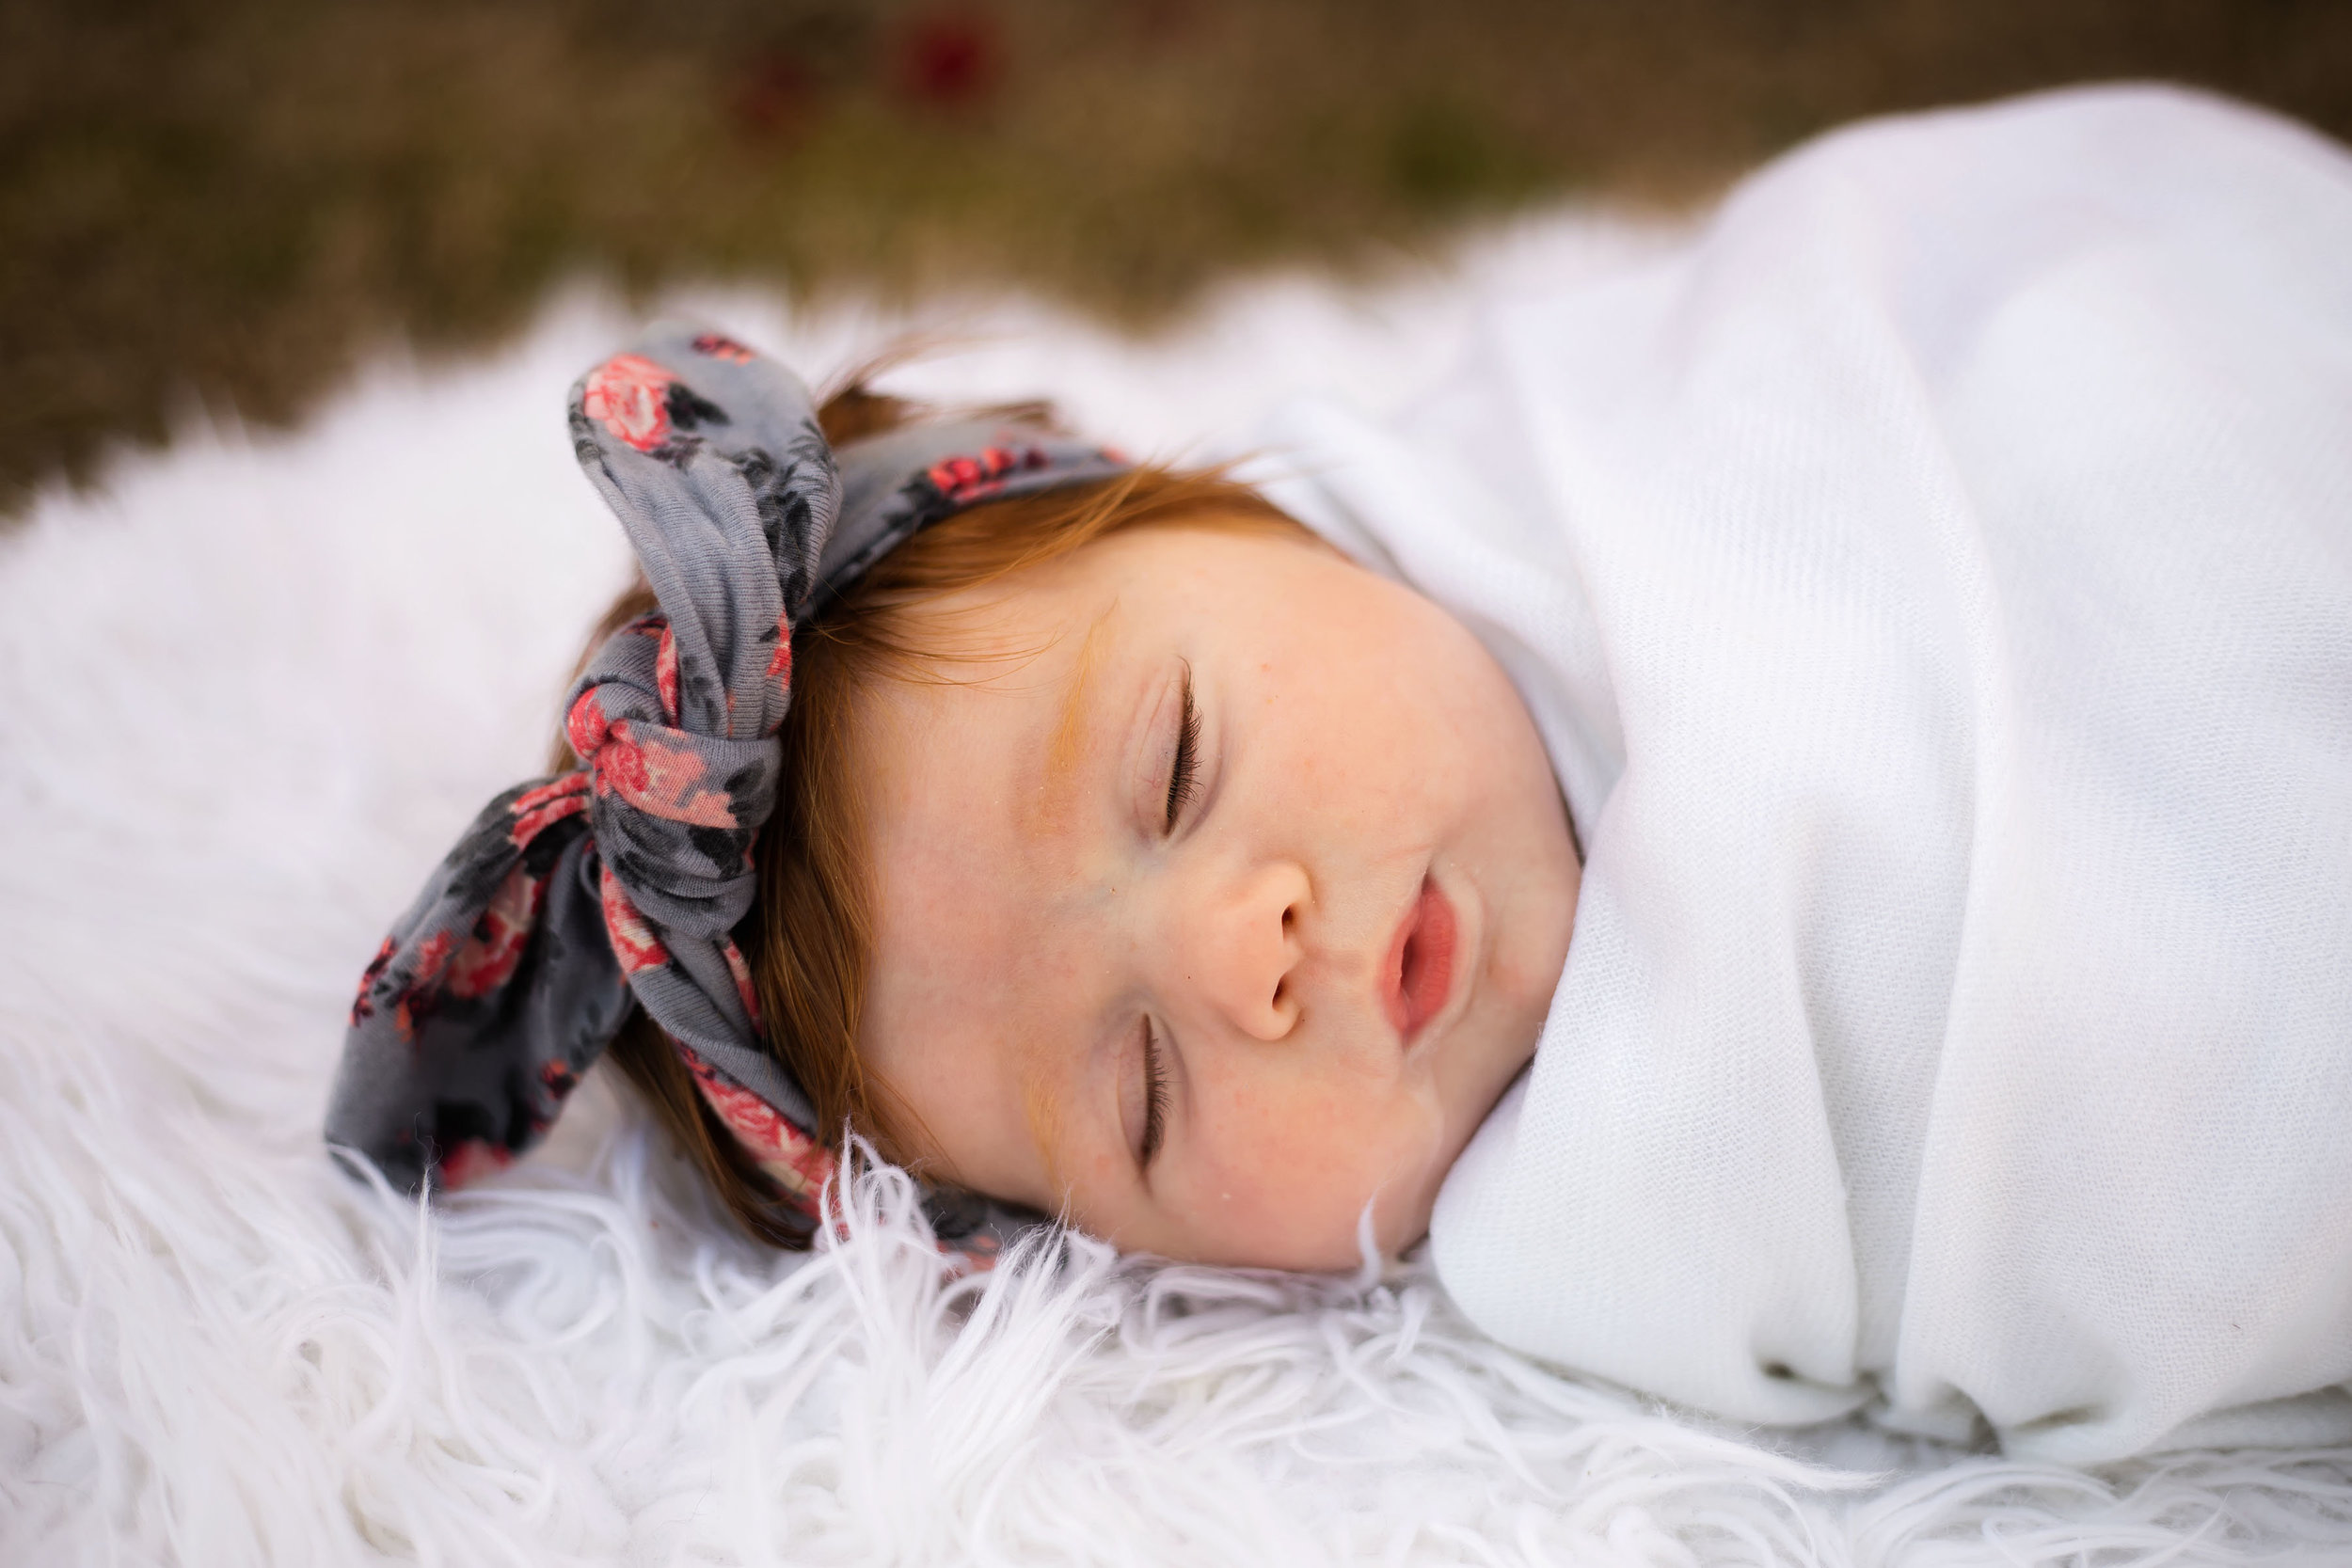 Wilmington-Newborn-Photographer-Tiffany-Abruzzo-Jordyn-3.jpg